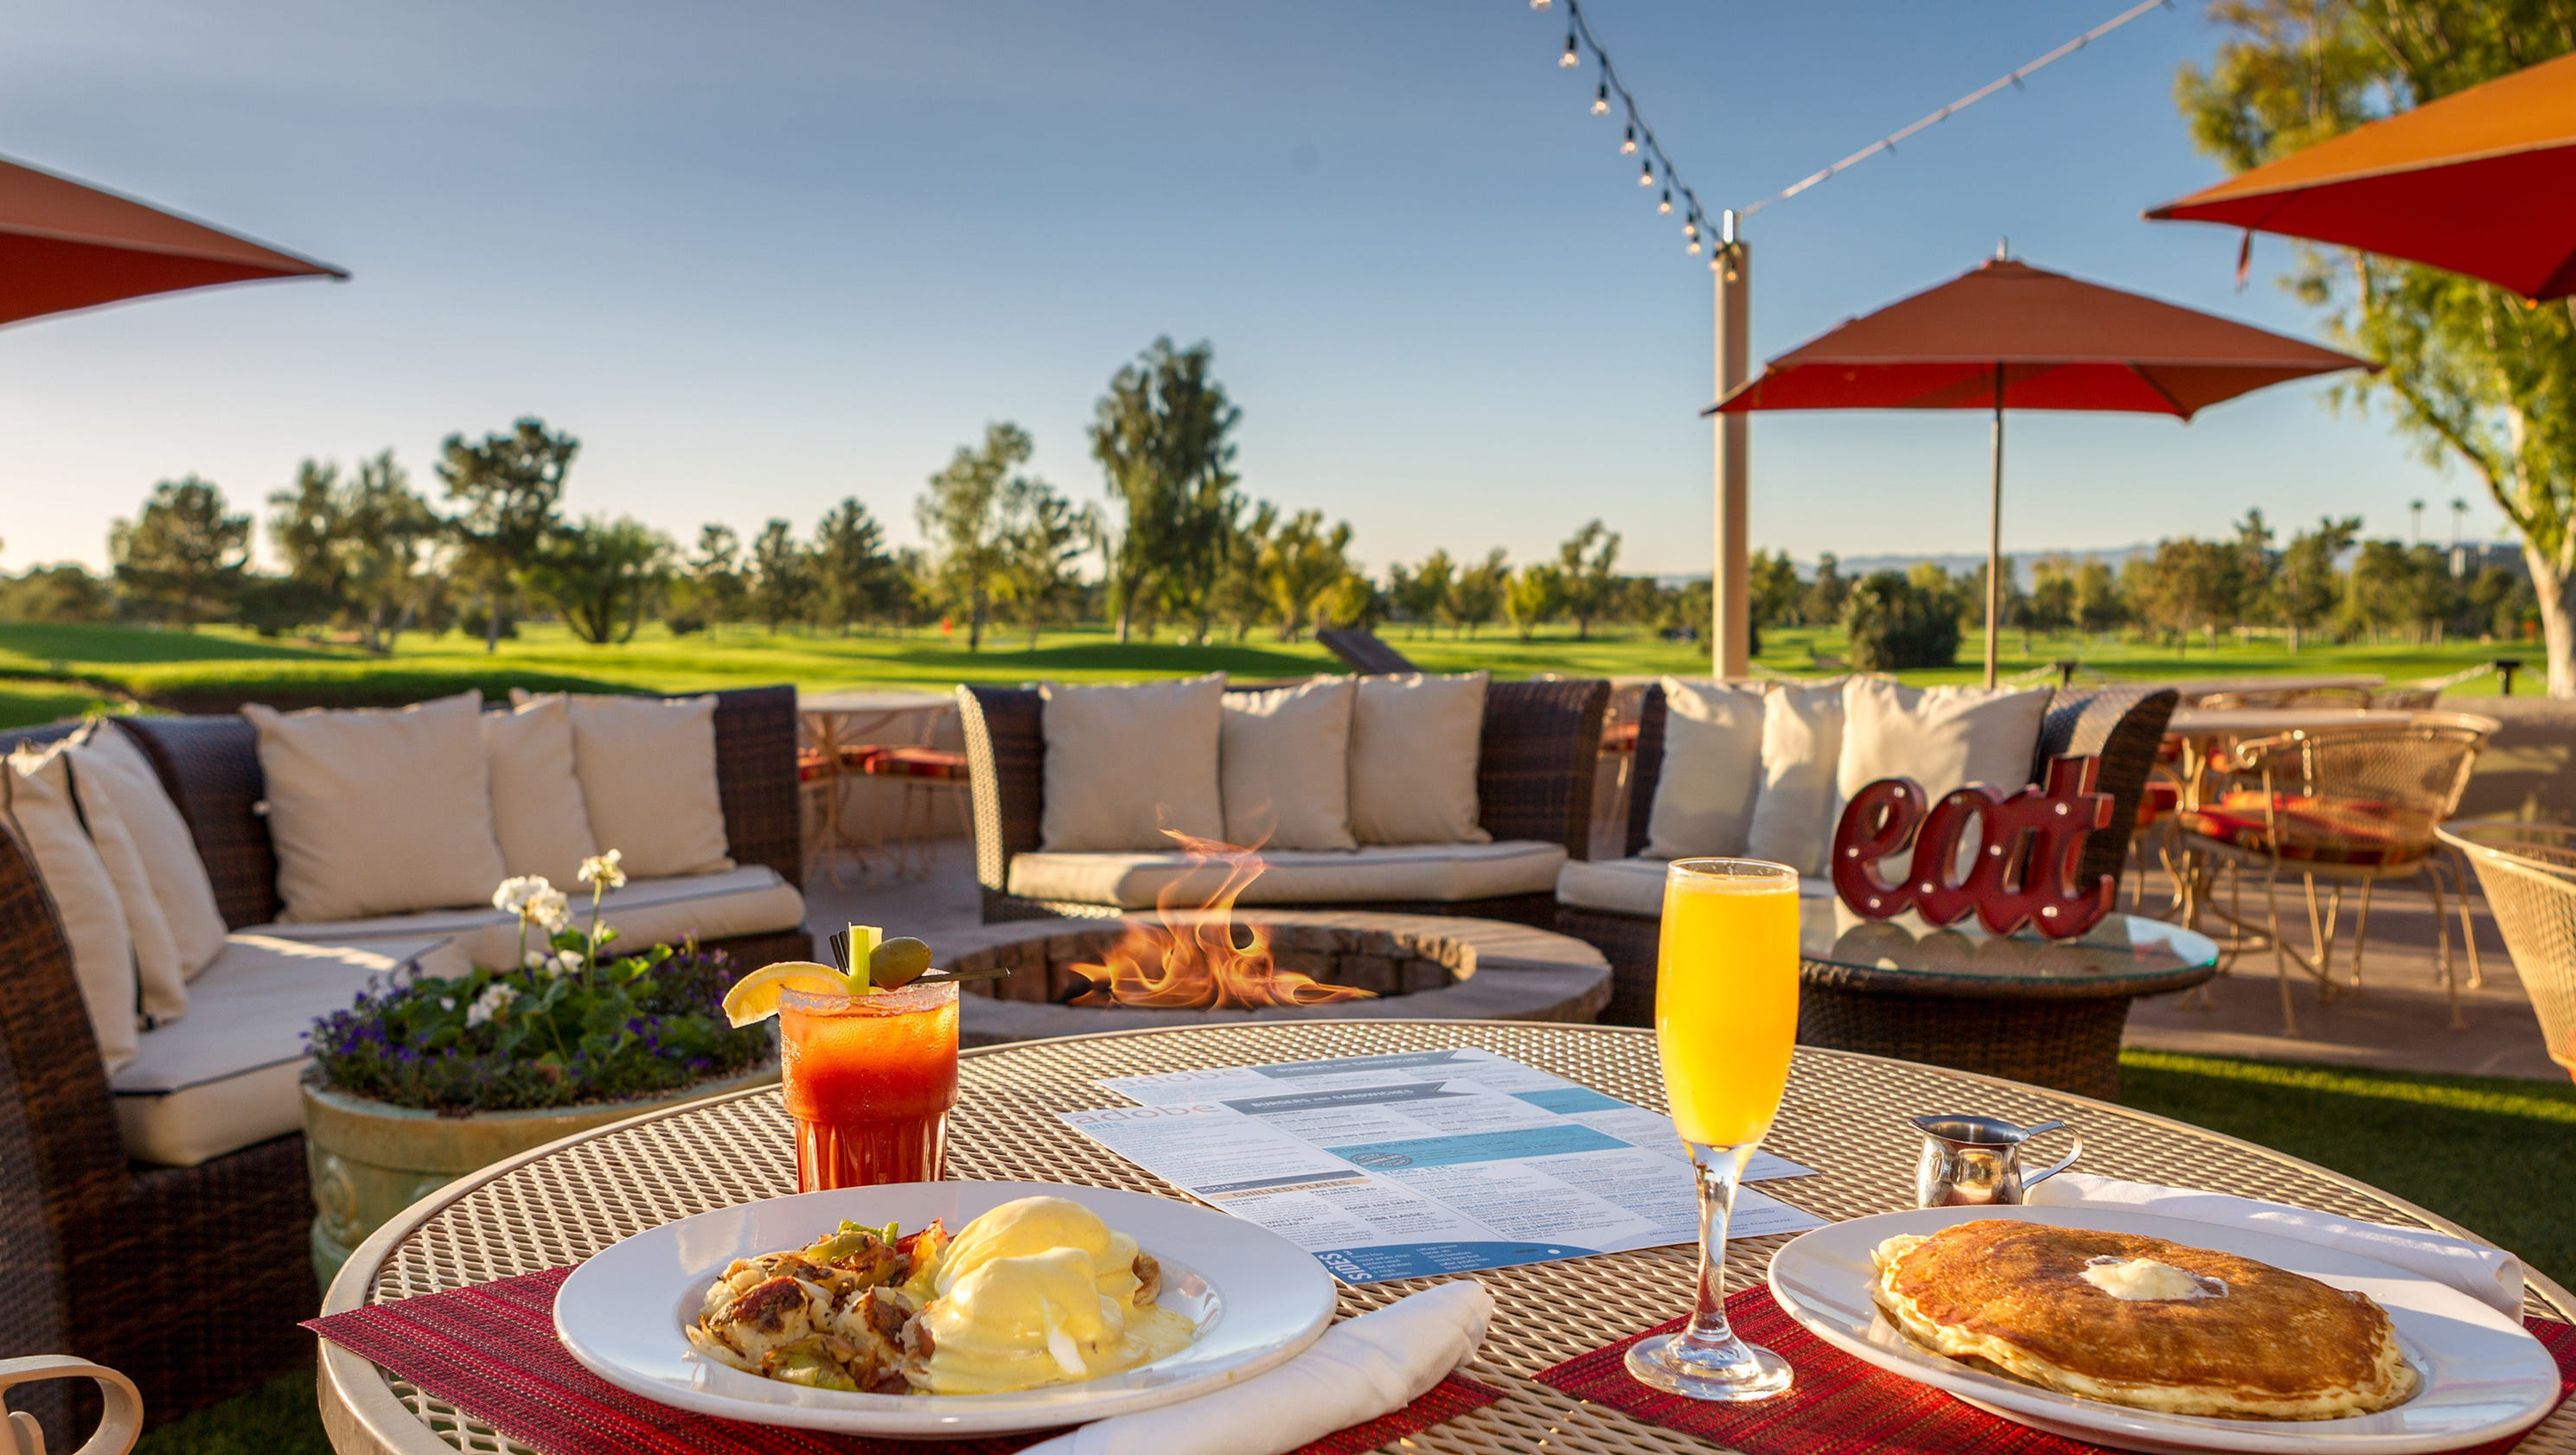 10 Phoenix area golf clubs with great restaurants open to the public